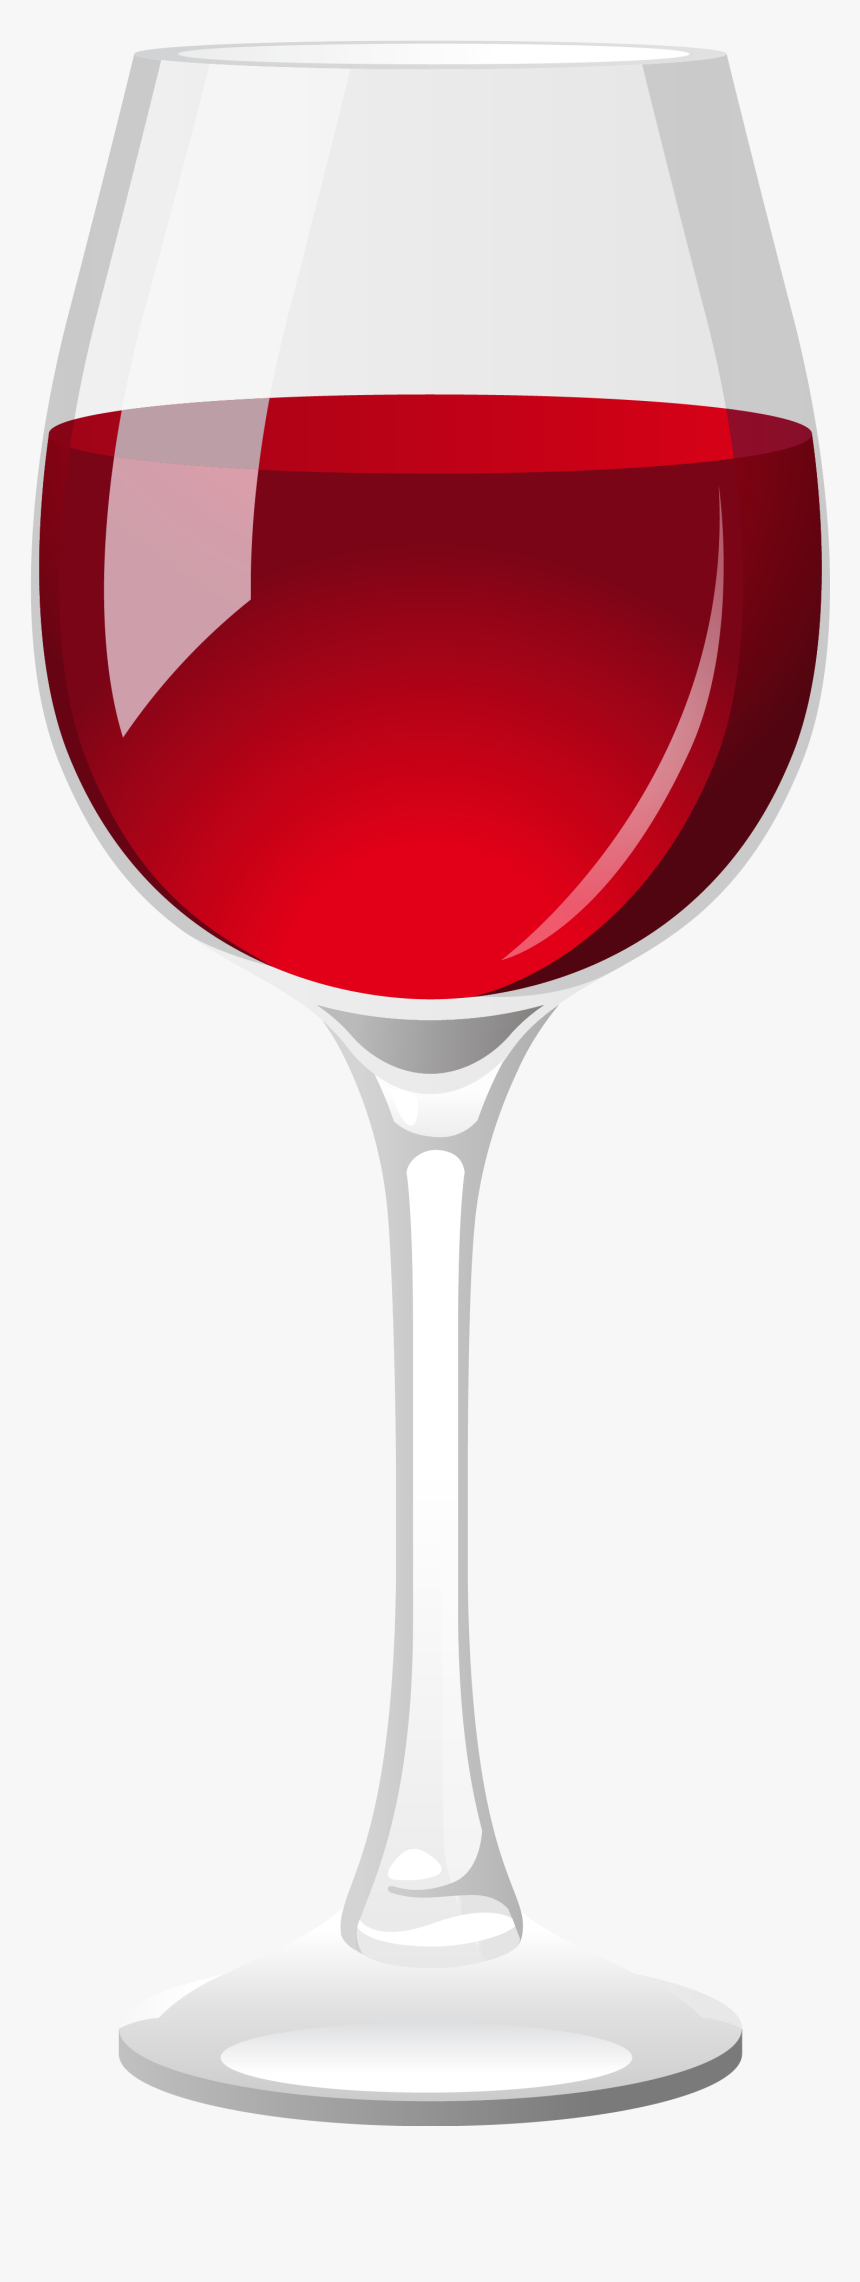 Red Wine Glass Png Clipart - Red Wine Glass Icon, Transparent Png, Free Download